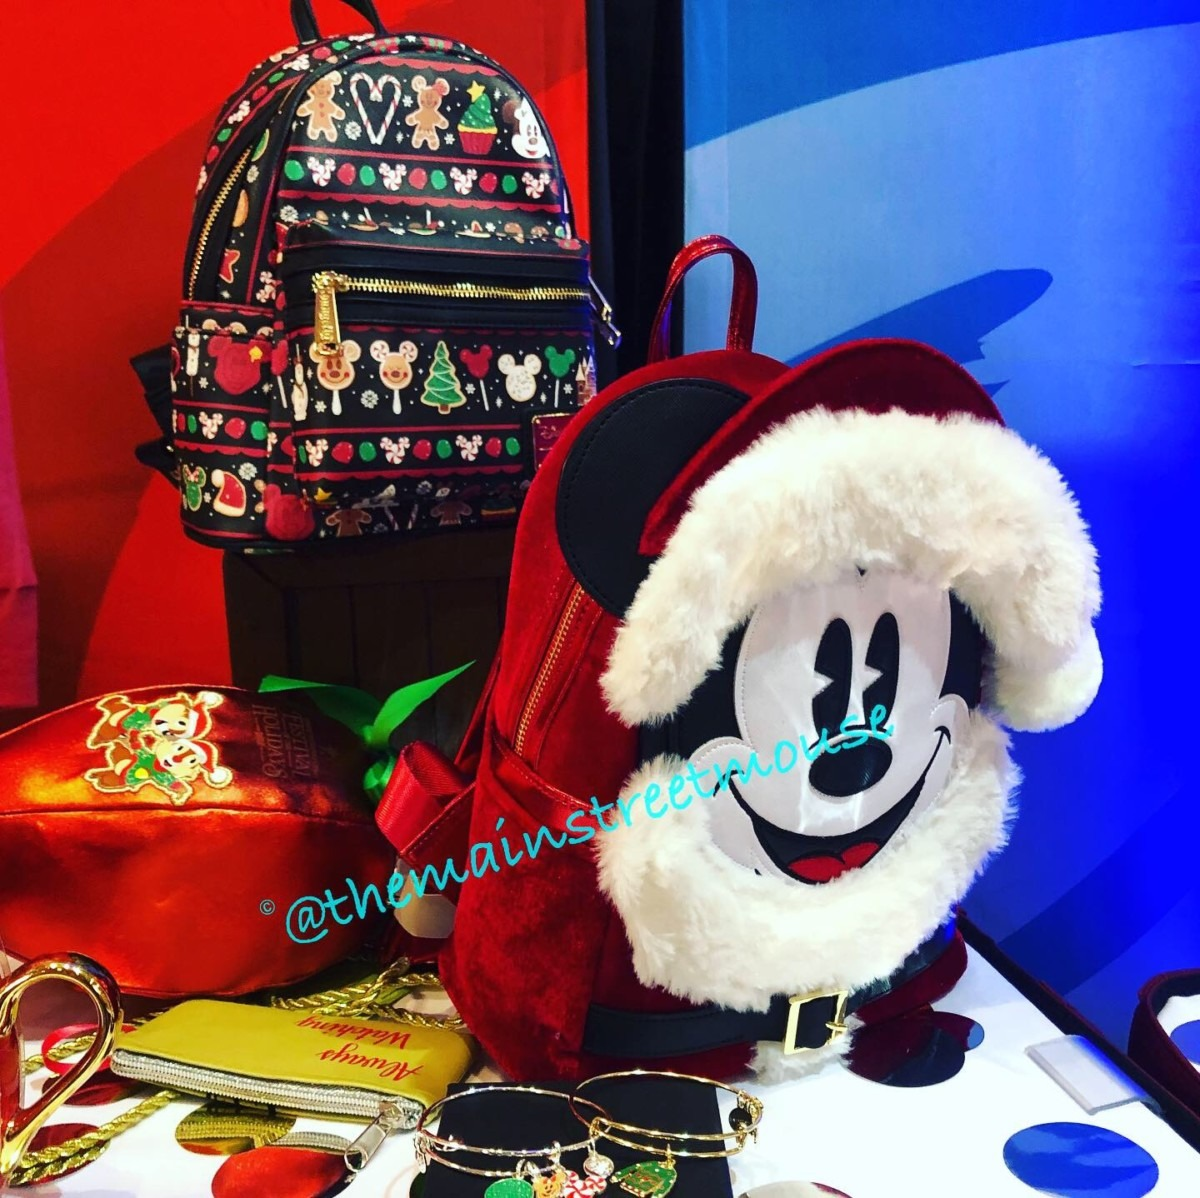 NEW Festive Merchandise Coming to WDW for the Christmas Season! #DisneyHolidays 4